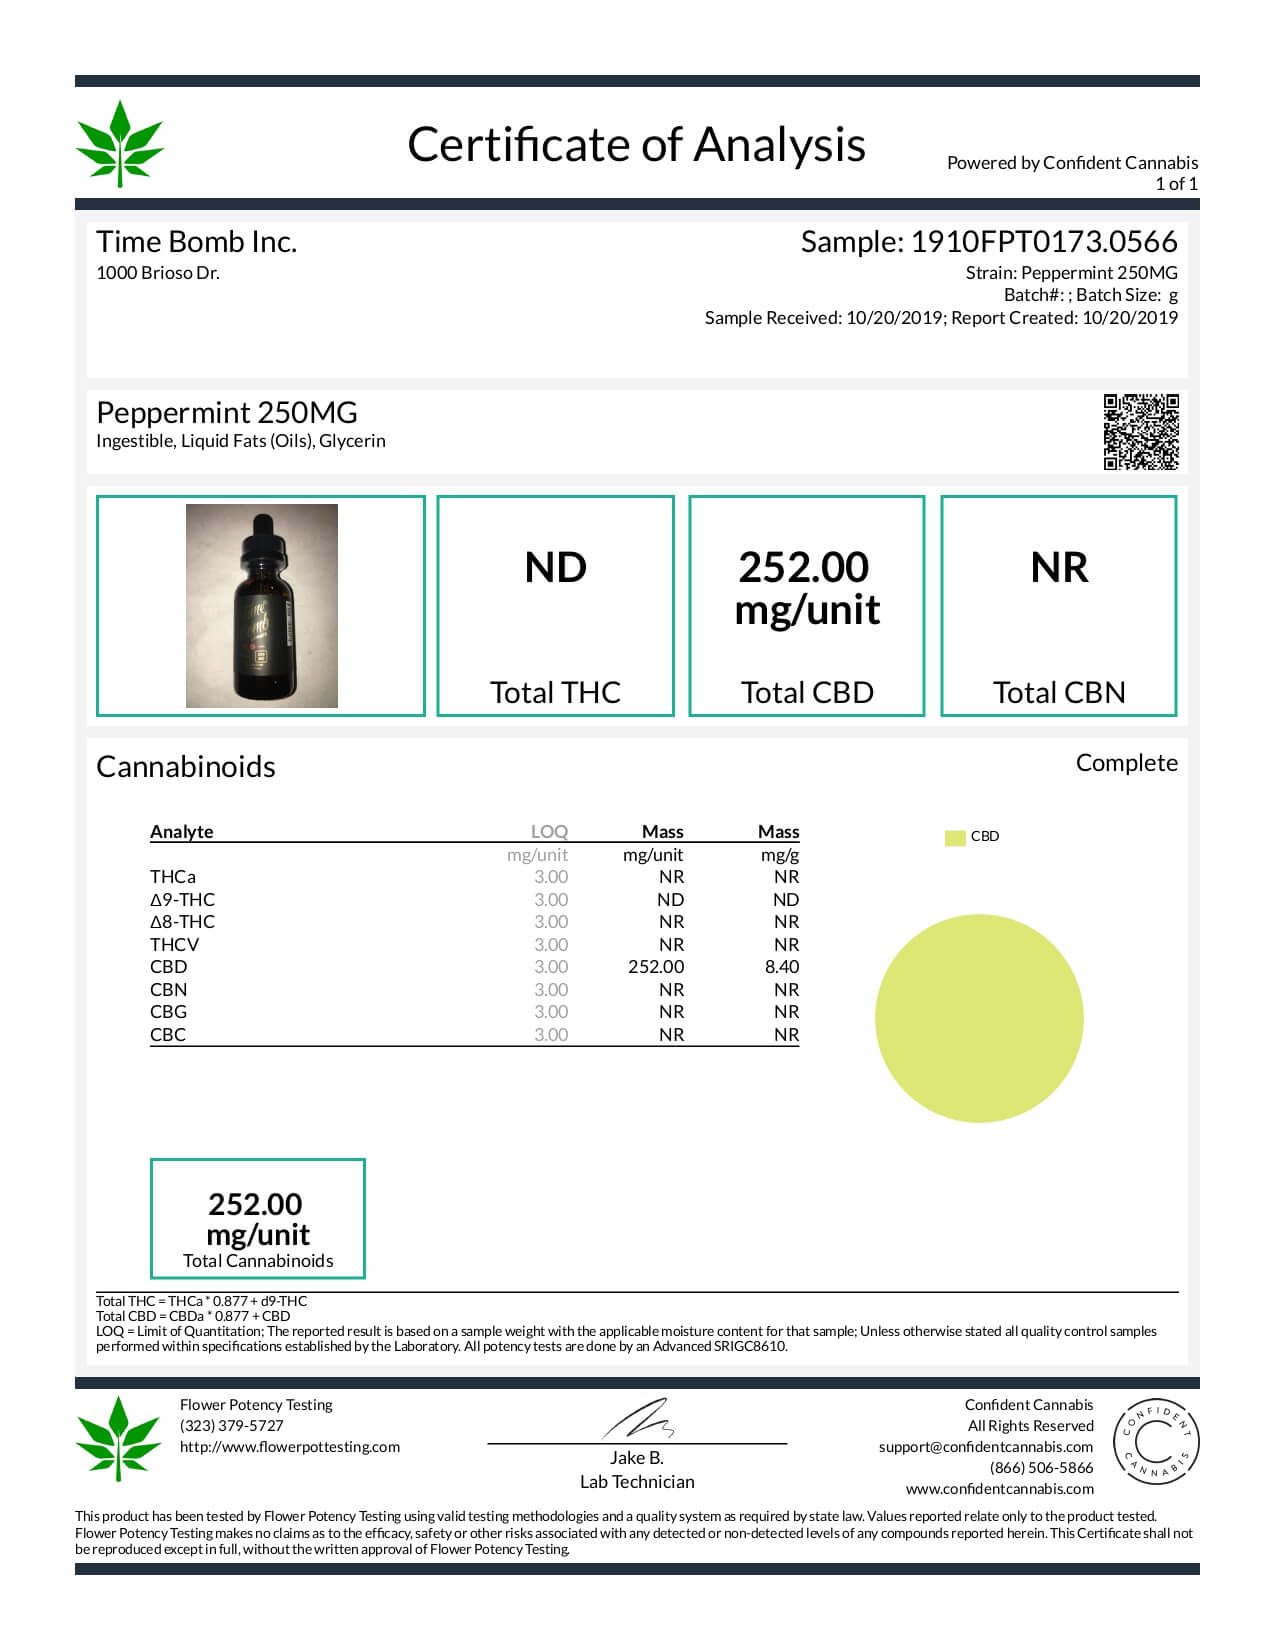 Time Bomb Extracts CBD Tincture Peppermint 250mg Lab Report